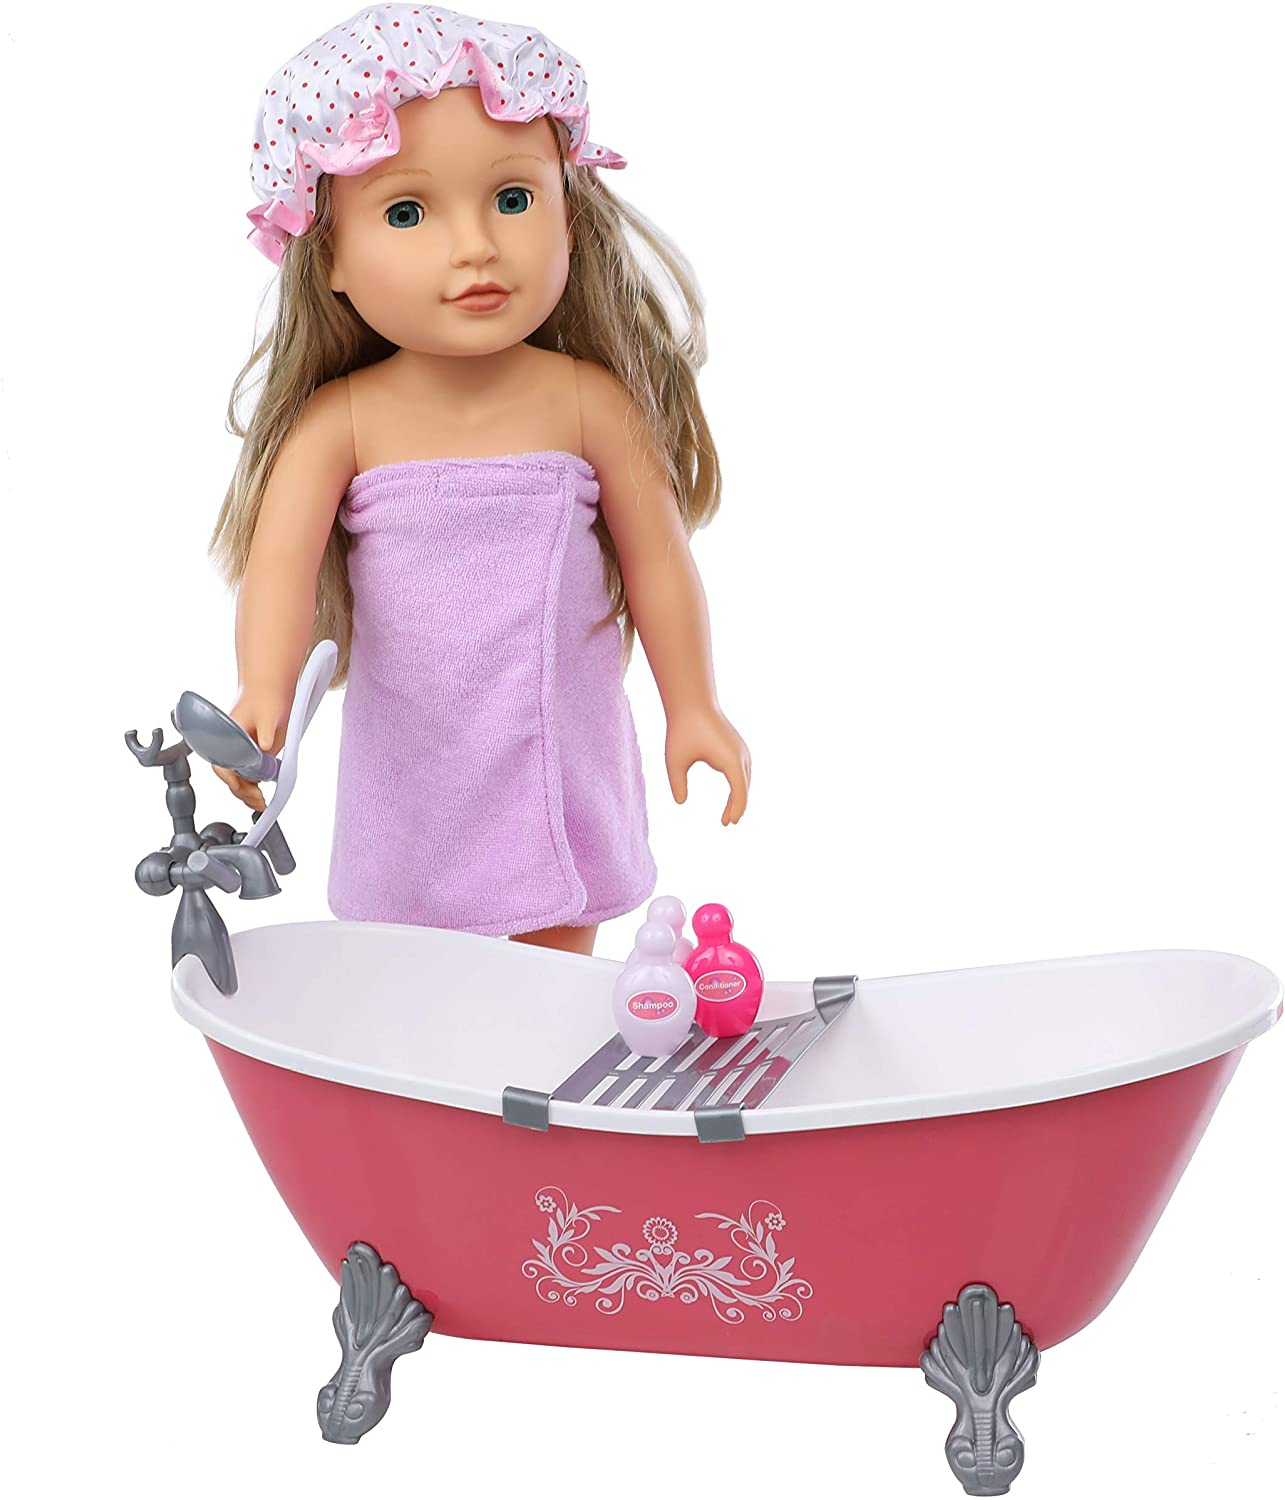 Beverly Hills Doll Accessories Hot Pink Bath Tub and Shower Set with Towel and Accessories, Fits 18 Inch American Girl Dolls